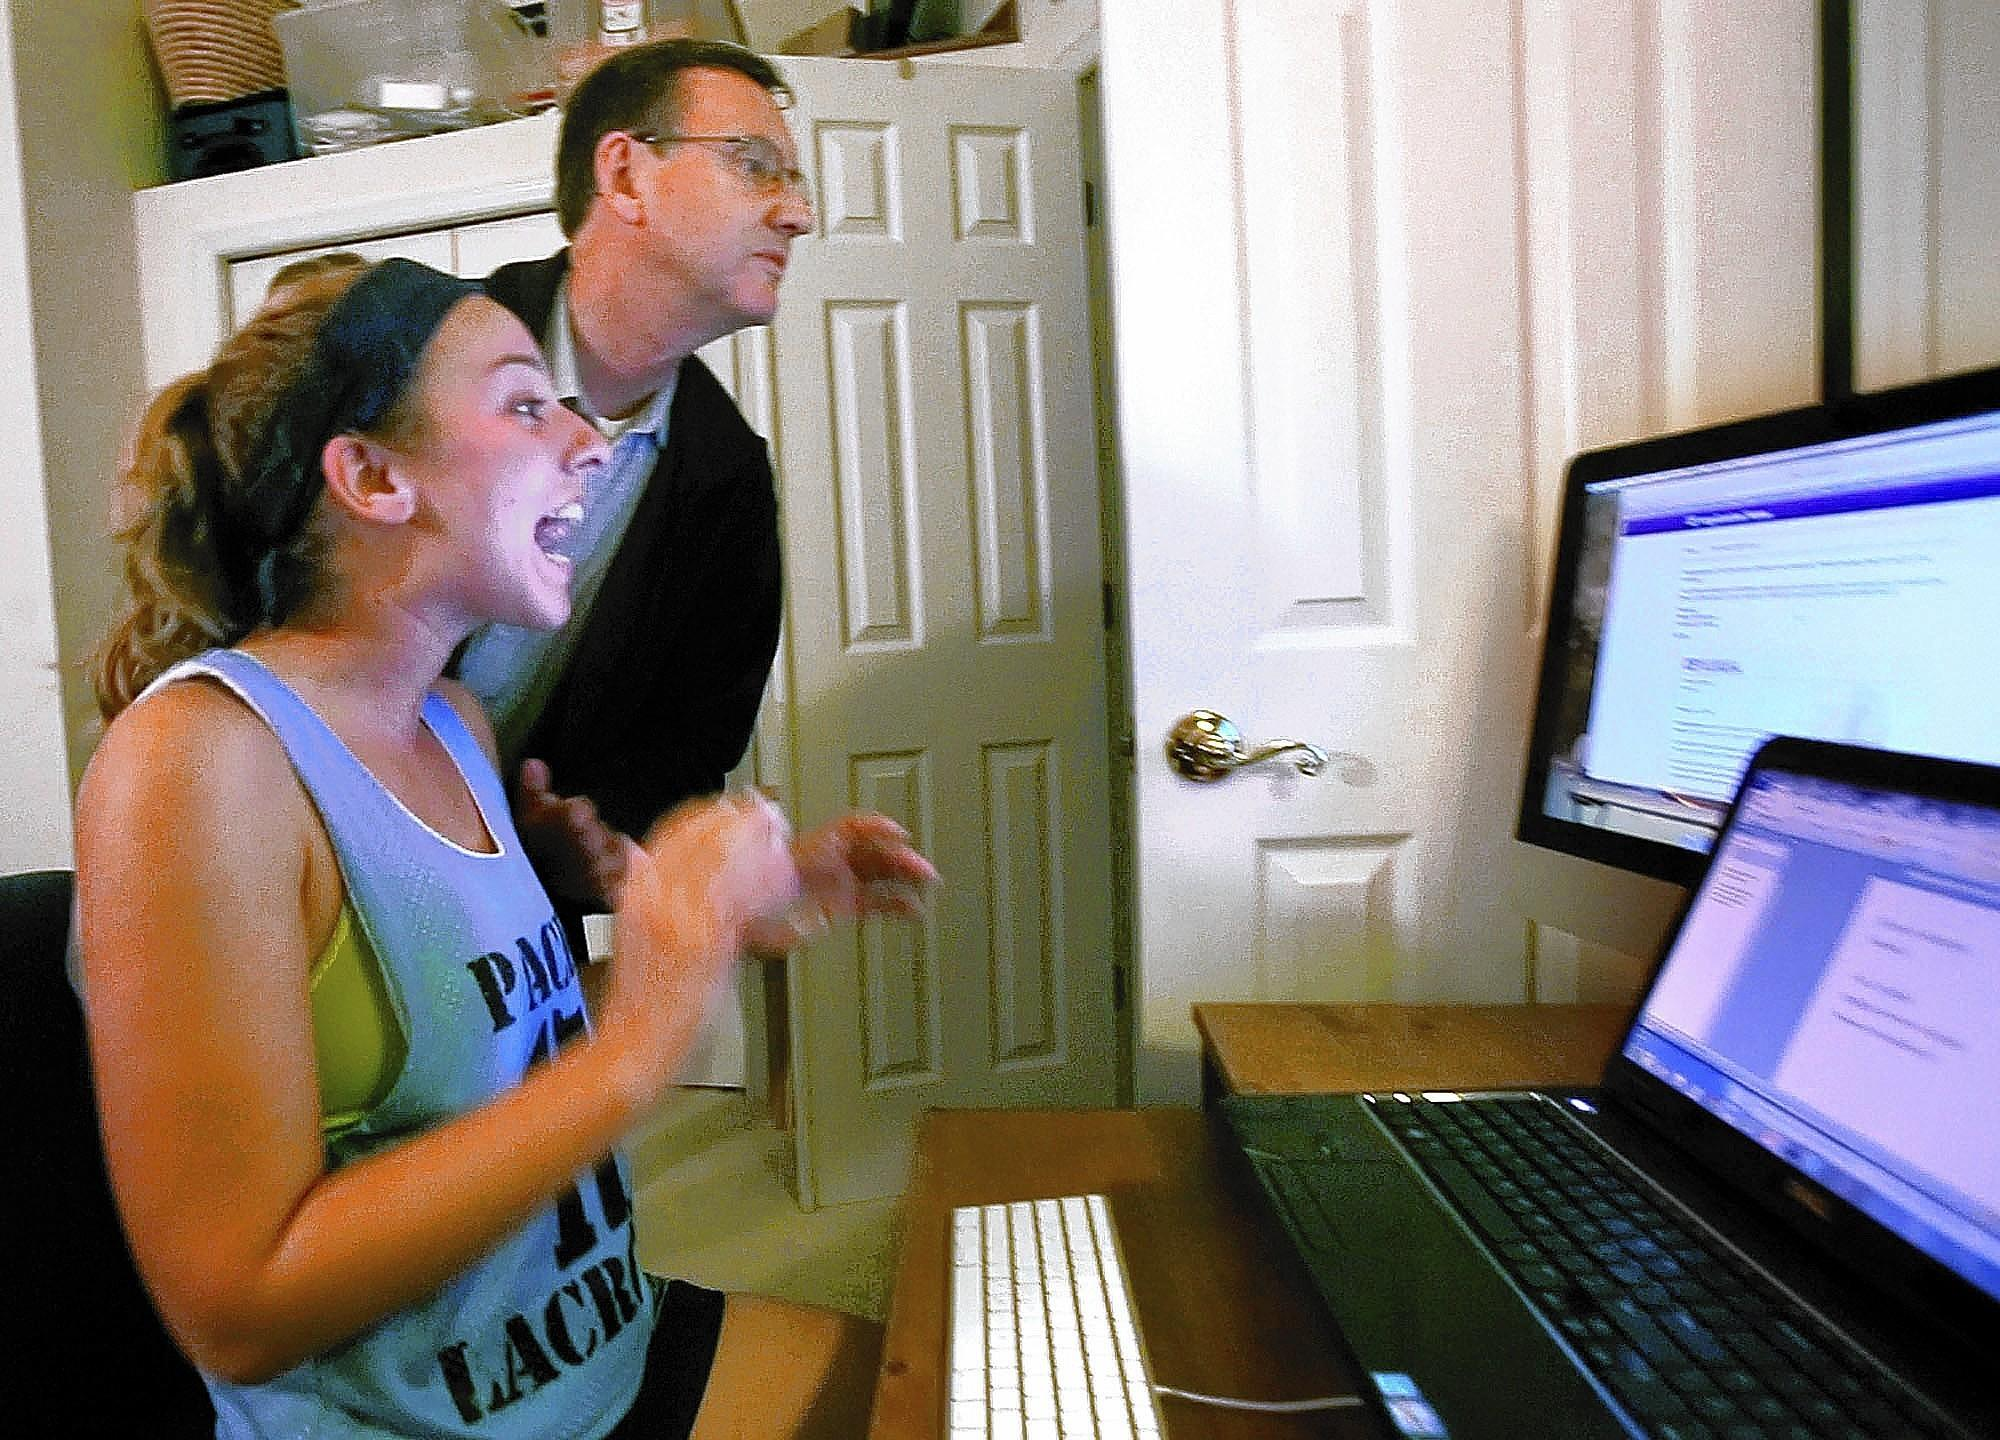 Hagerty High lacrosse player Matilda von Kalm reacts after finding out via email that she's been accepted at the University of Florida on Friday, February 14, 2014. She is at her home, and her father, Lawrence.